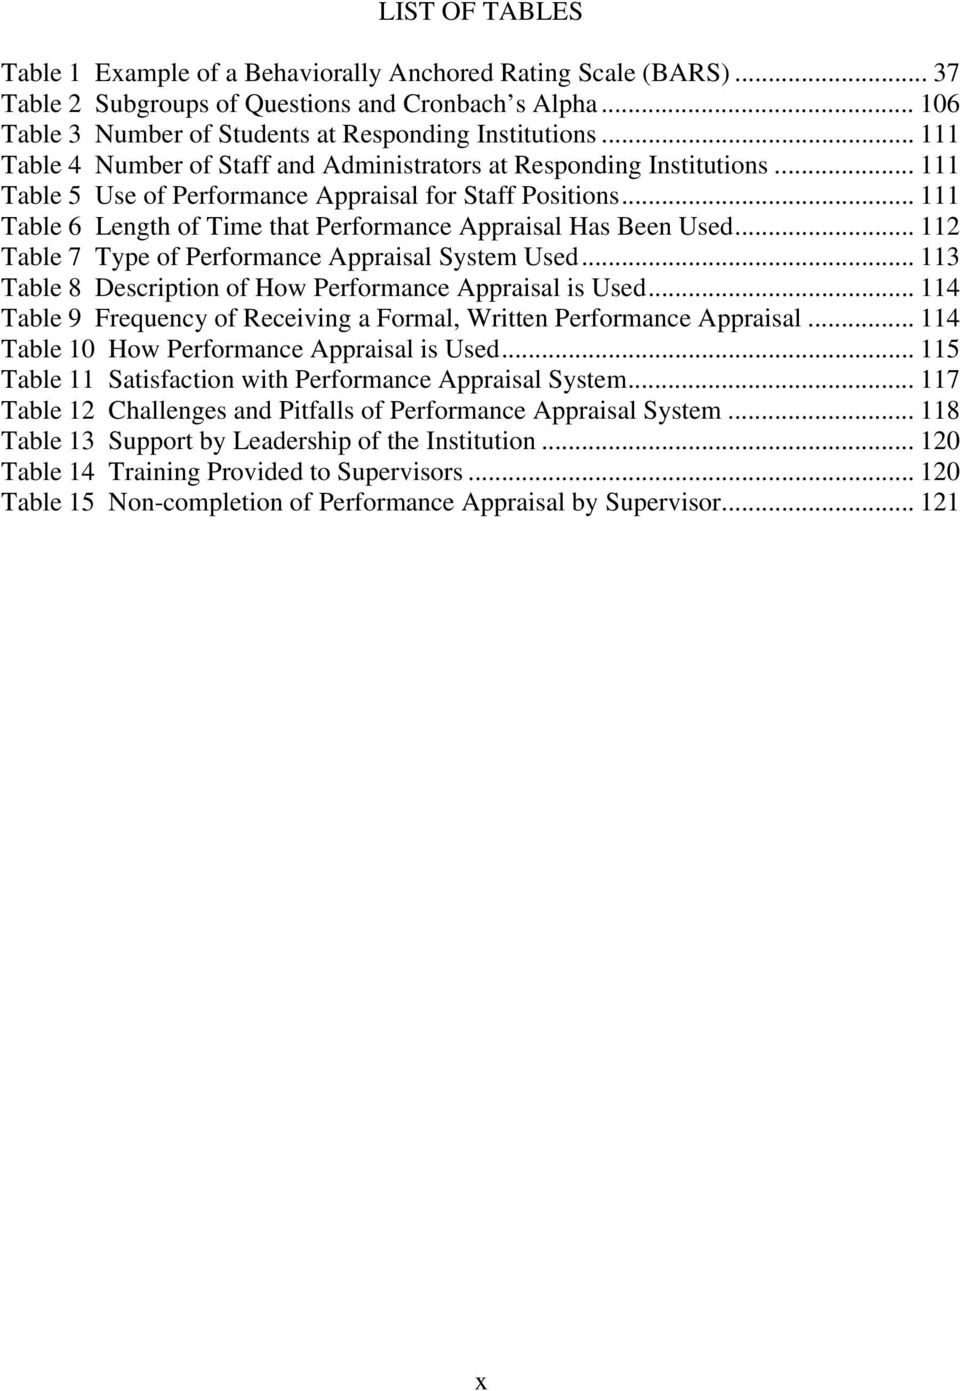 Performance Appraisal Literature Review  Literature review on performance appraisal doc